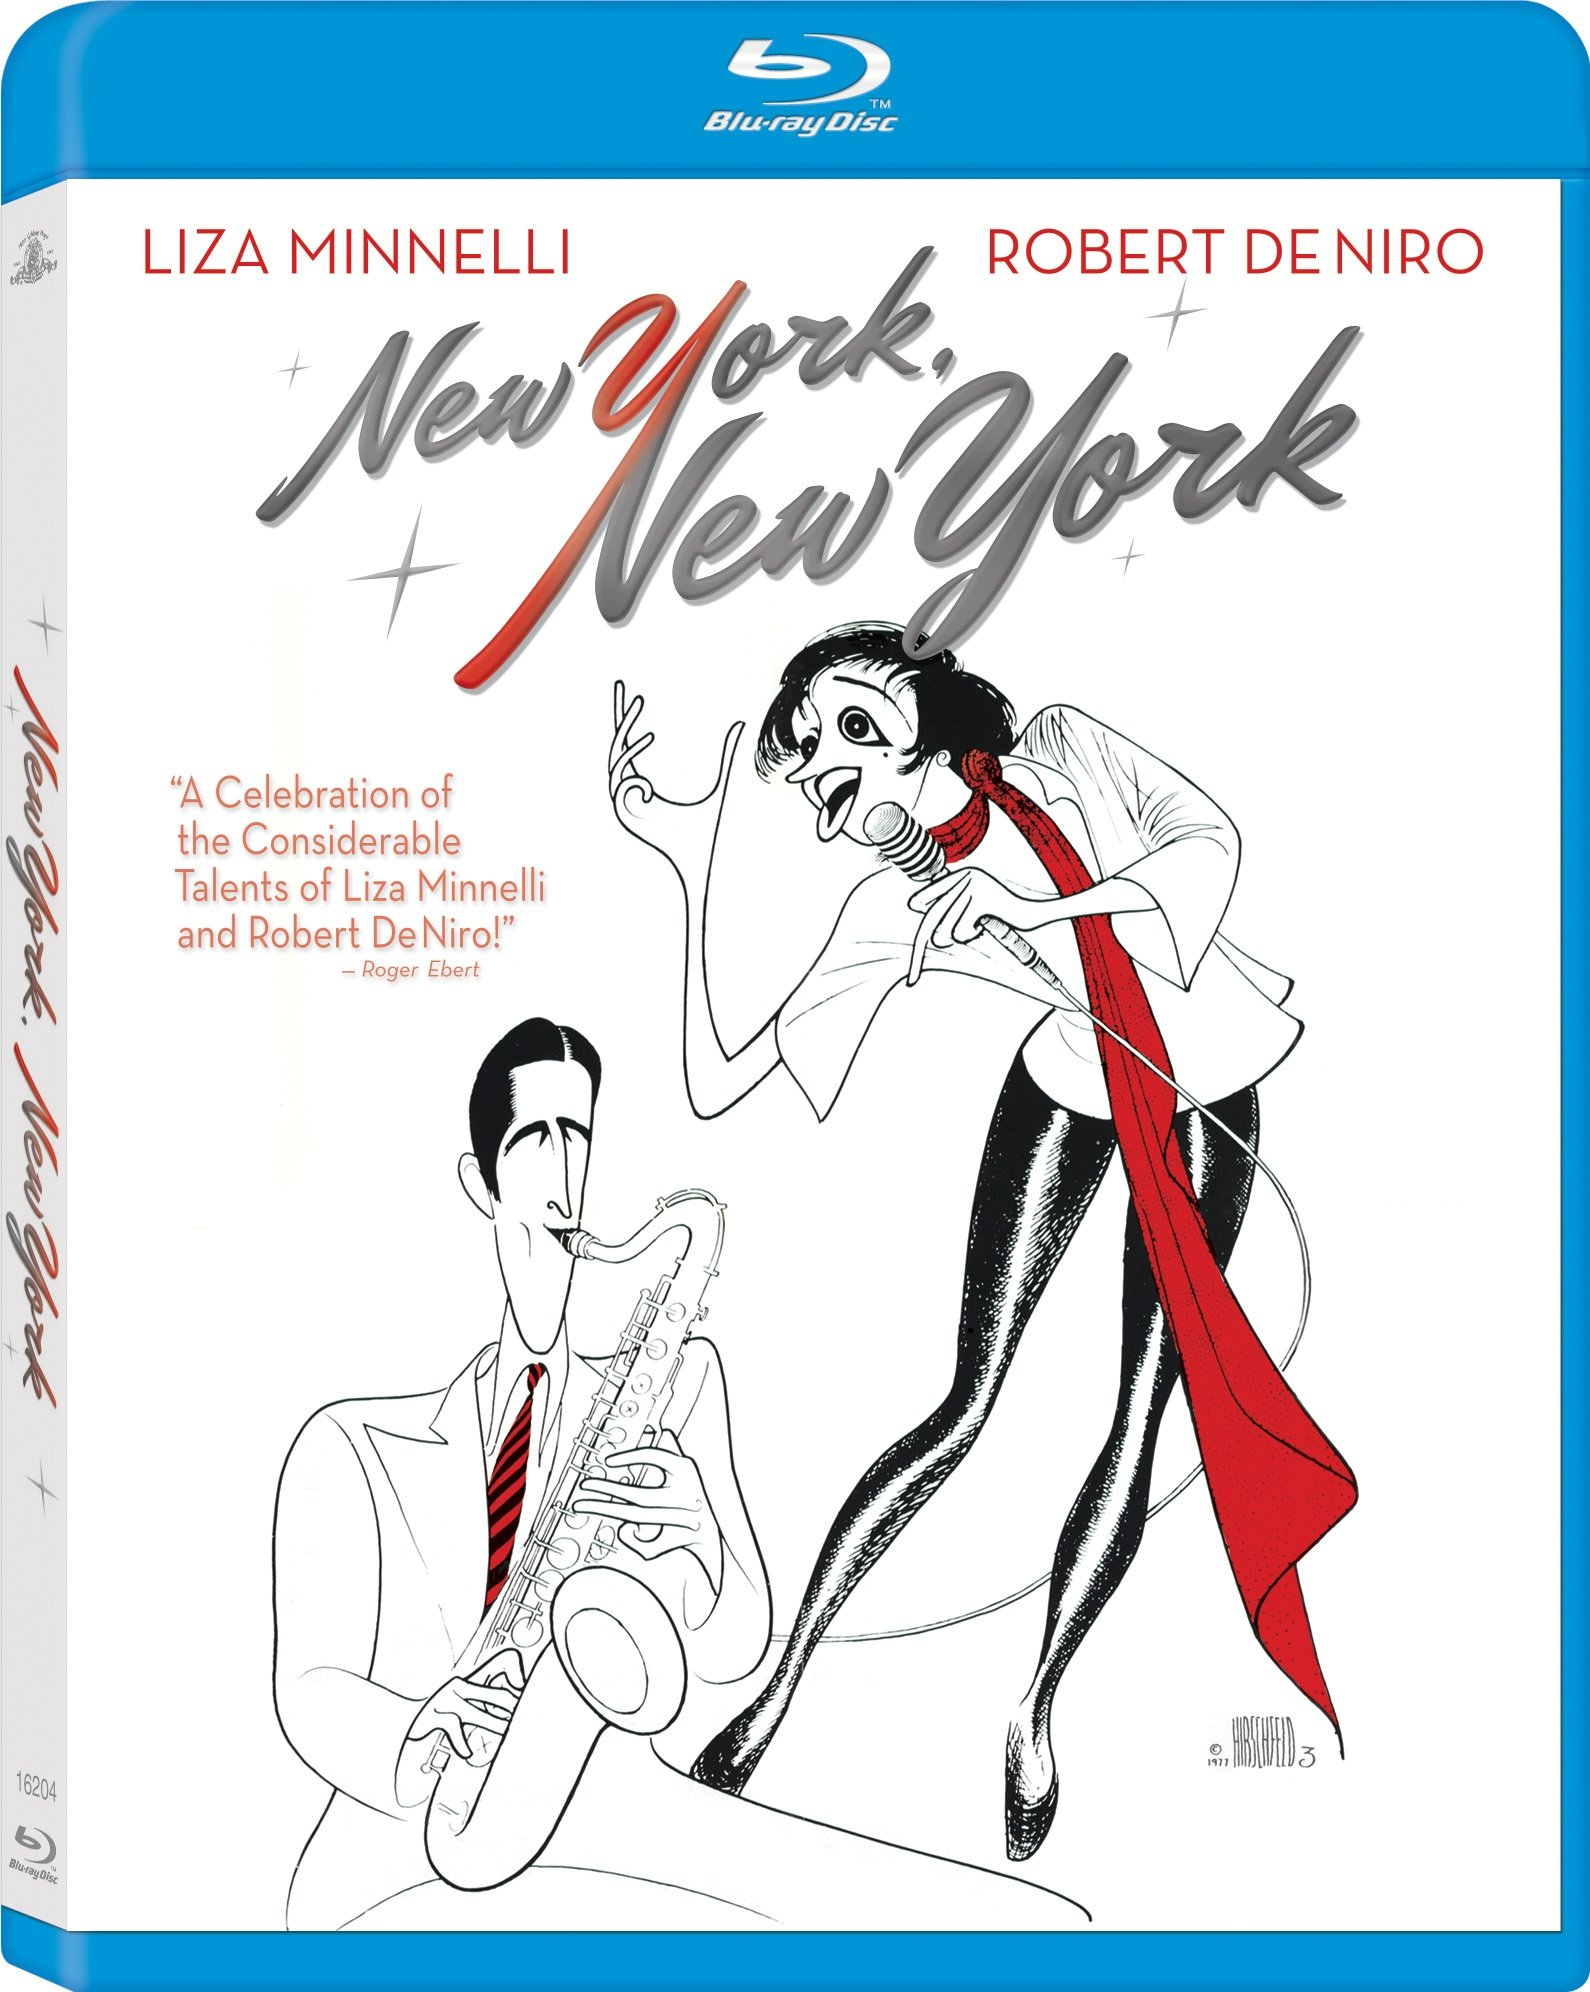 Blu-ray : New Yok, New York (Widescreen)